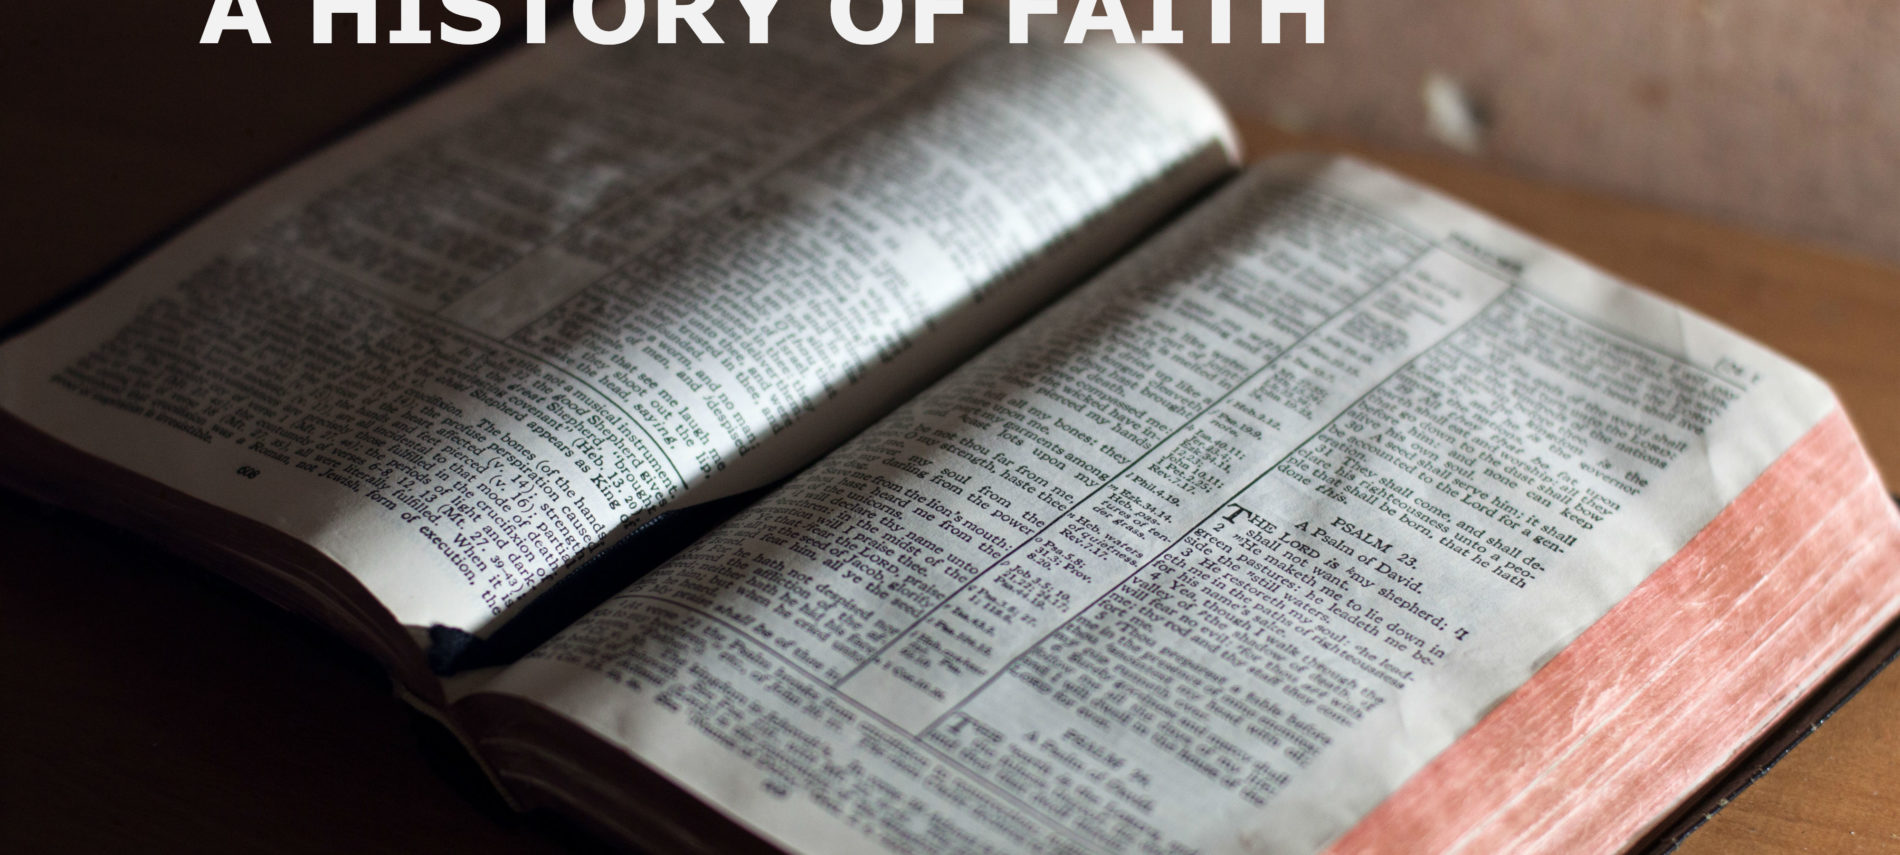 An open bible with title: A History of Faith.